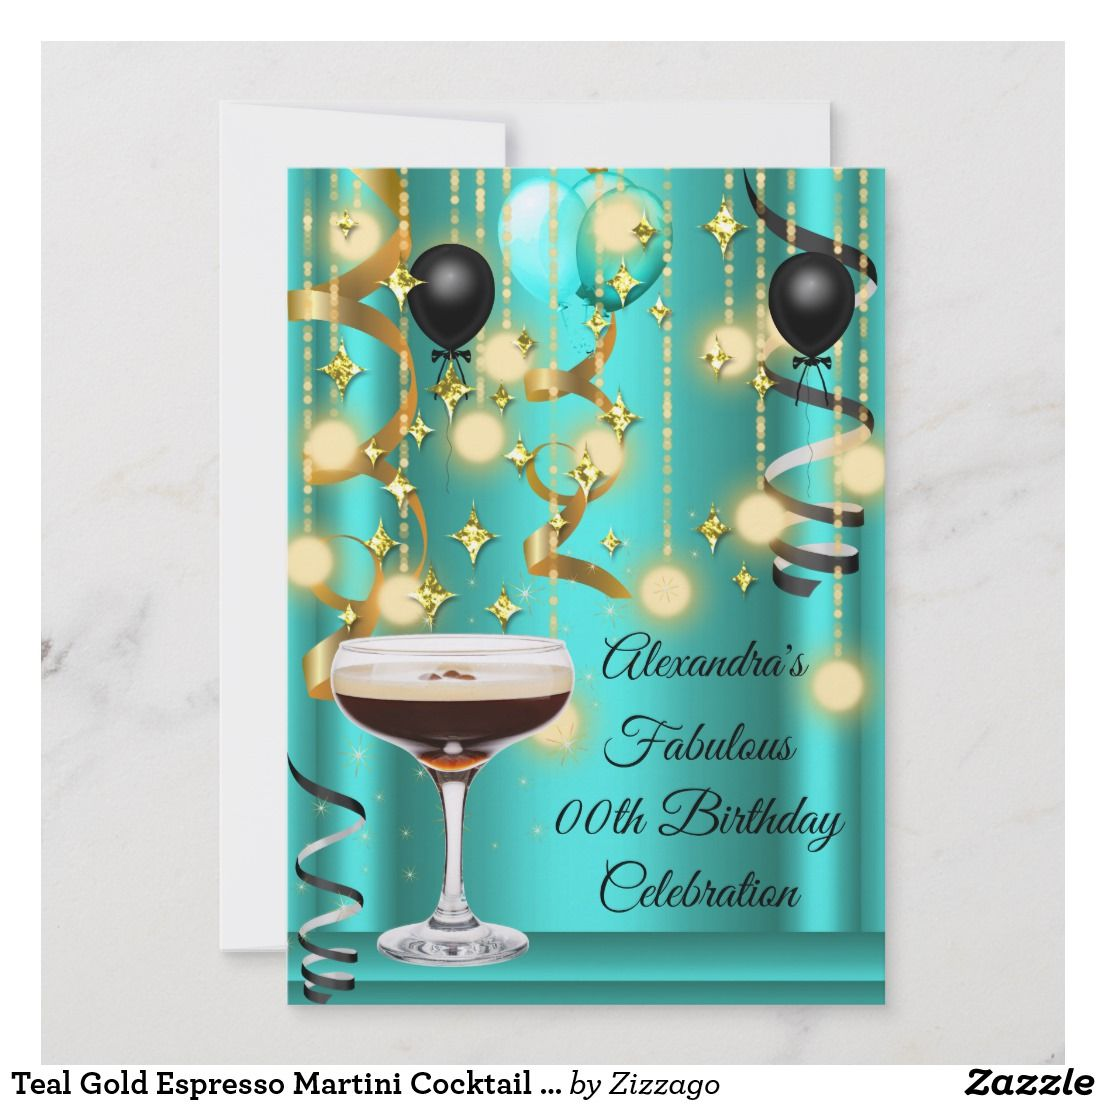 Teal Gold Espresso Martini Cocktail Party Invite Zazzle Com Espresso Martini Martini Cocktail Black Balloons Party